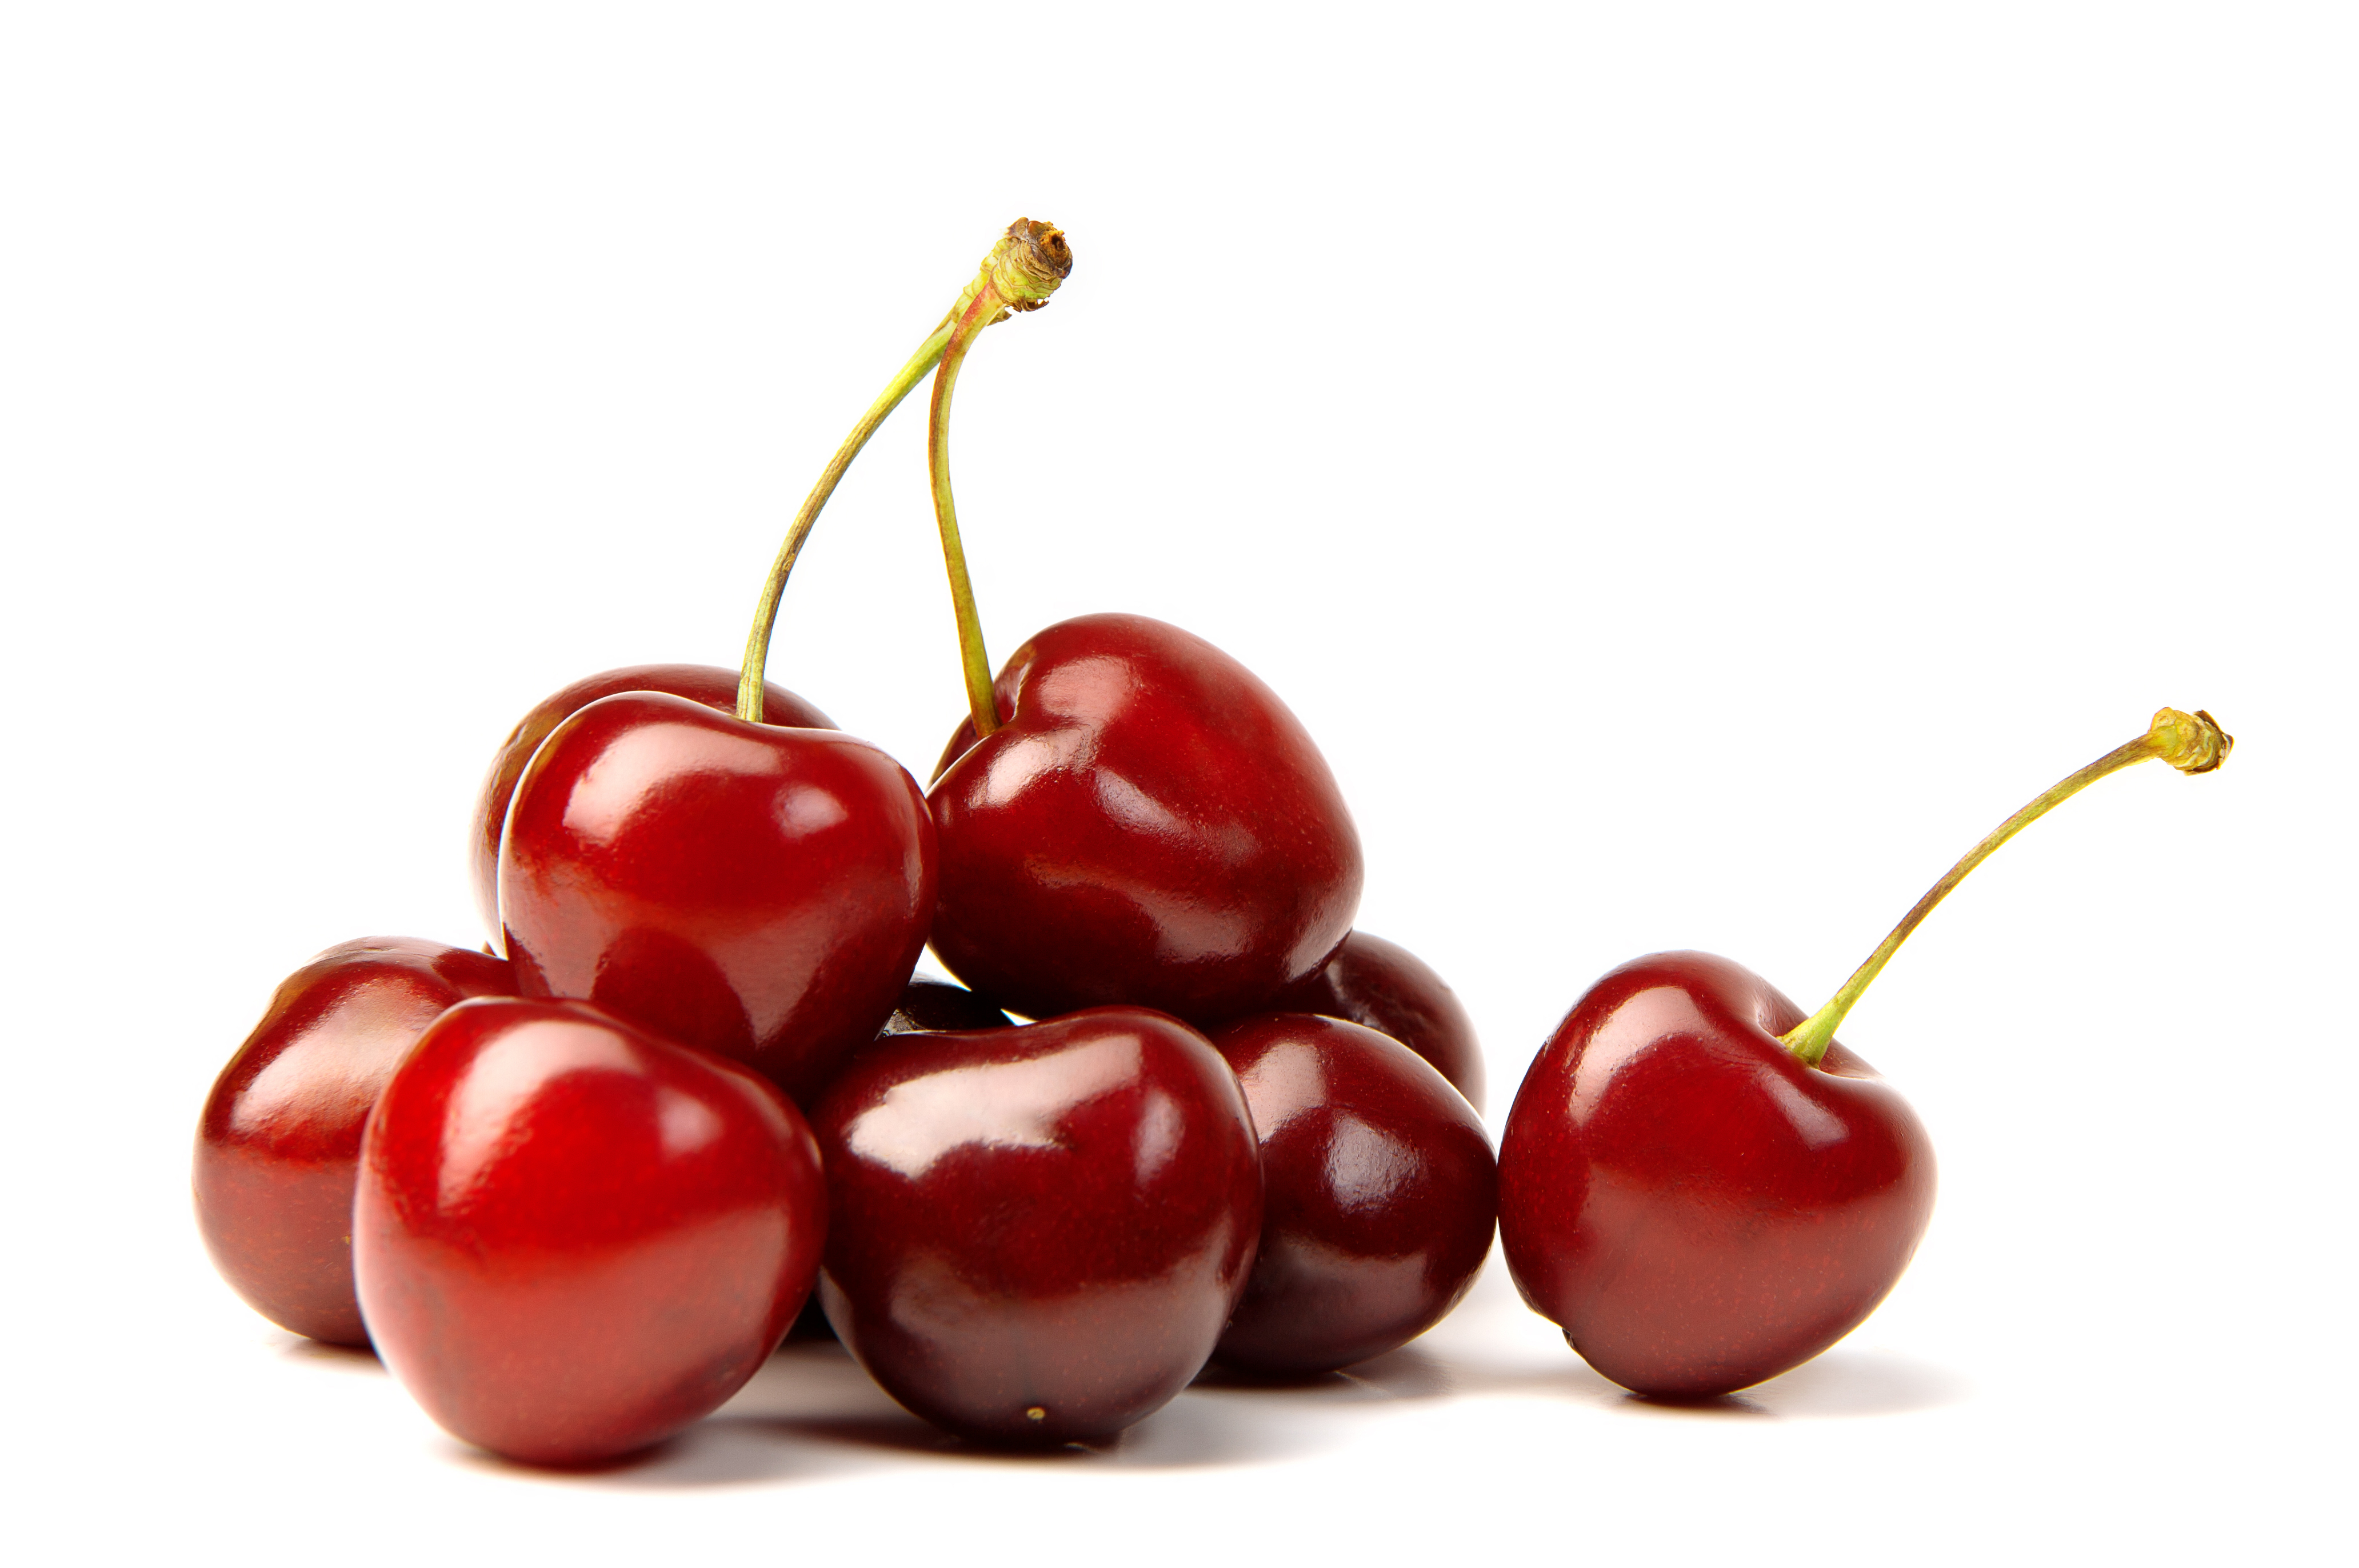 Ripe Black Cherry 456.28 Kb